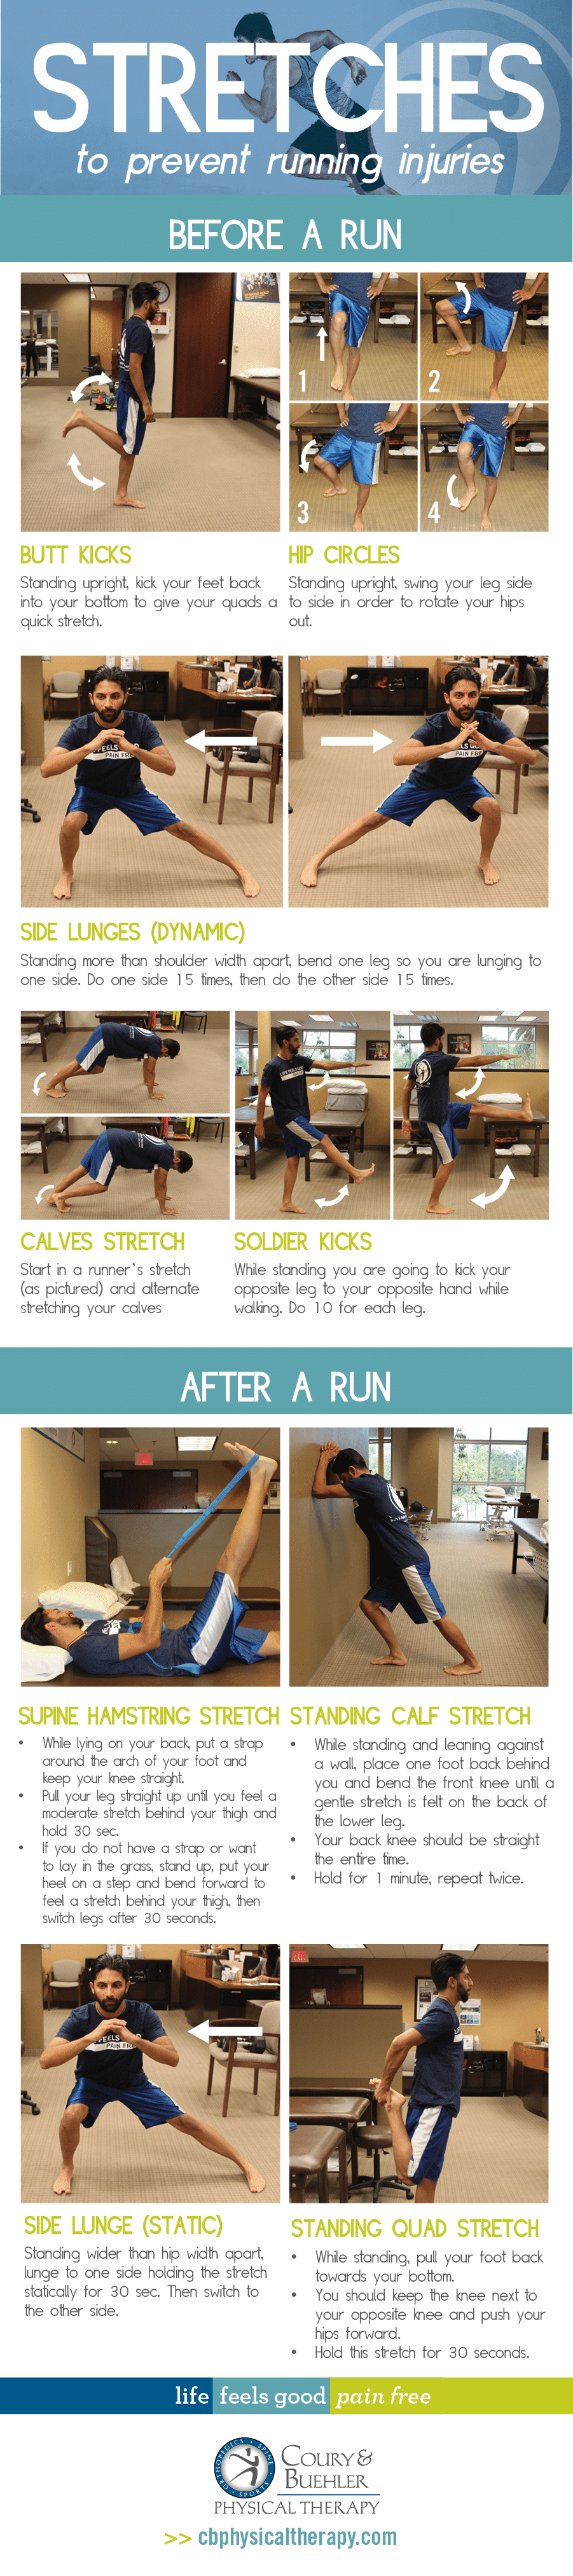 Stretches to Prevent Running Injuries